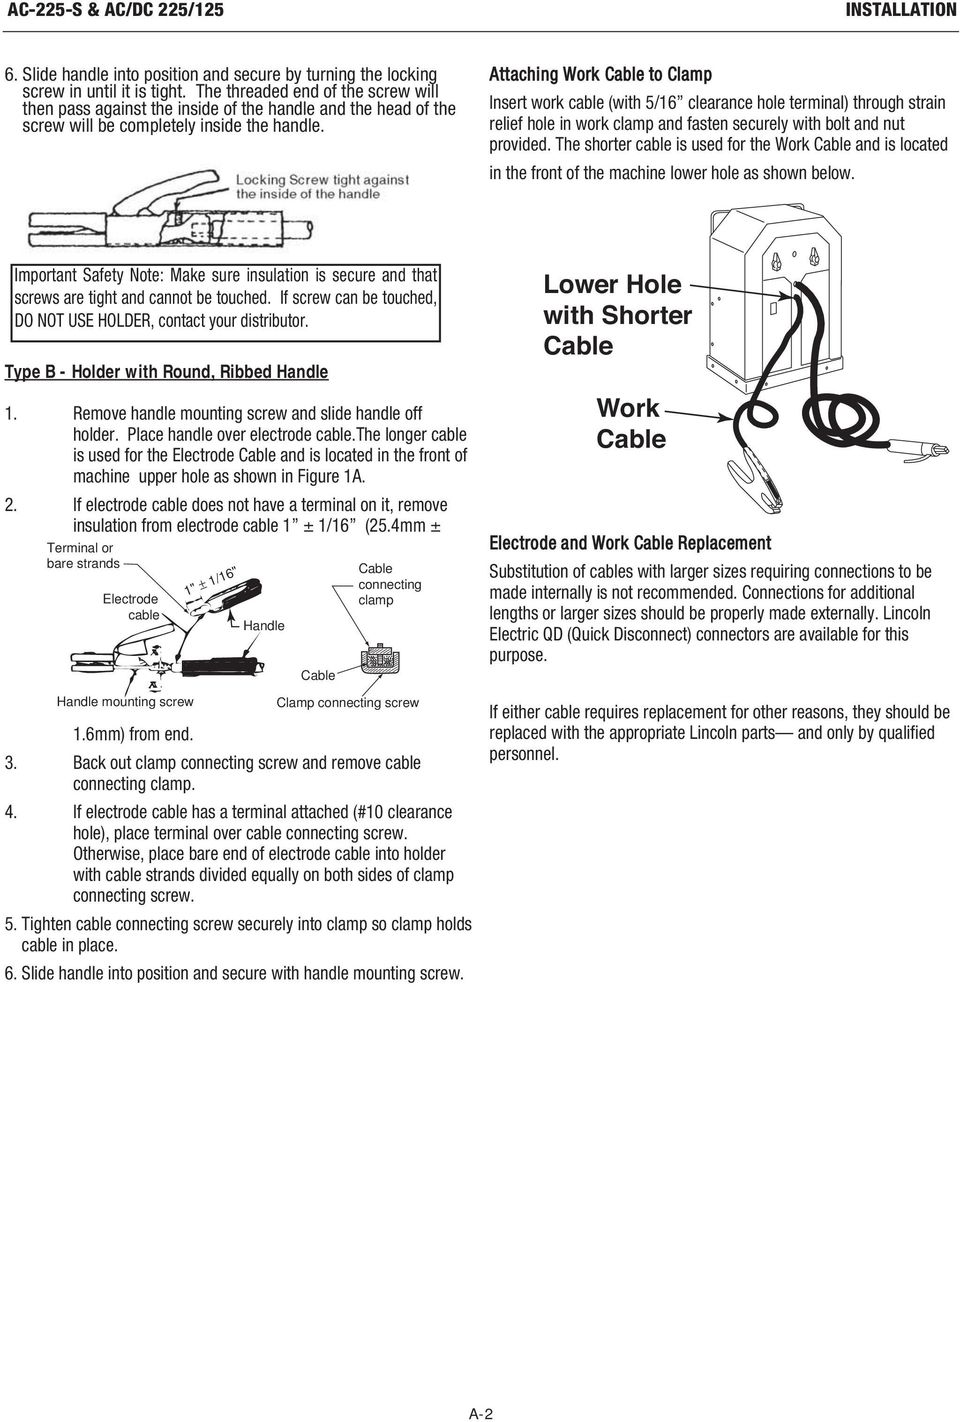 Ac 225 S Dc 125 Pdf Lincoln Wiring Diagram Attaching Work Cable To Clamp Insert With 5 16 Clearance Hole Terminal